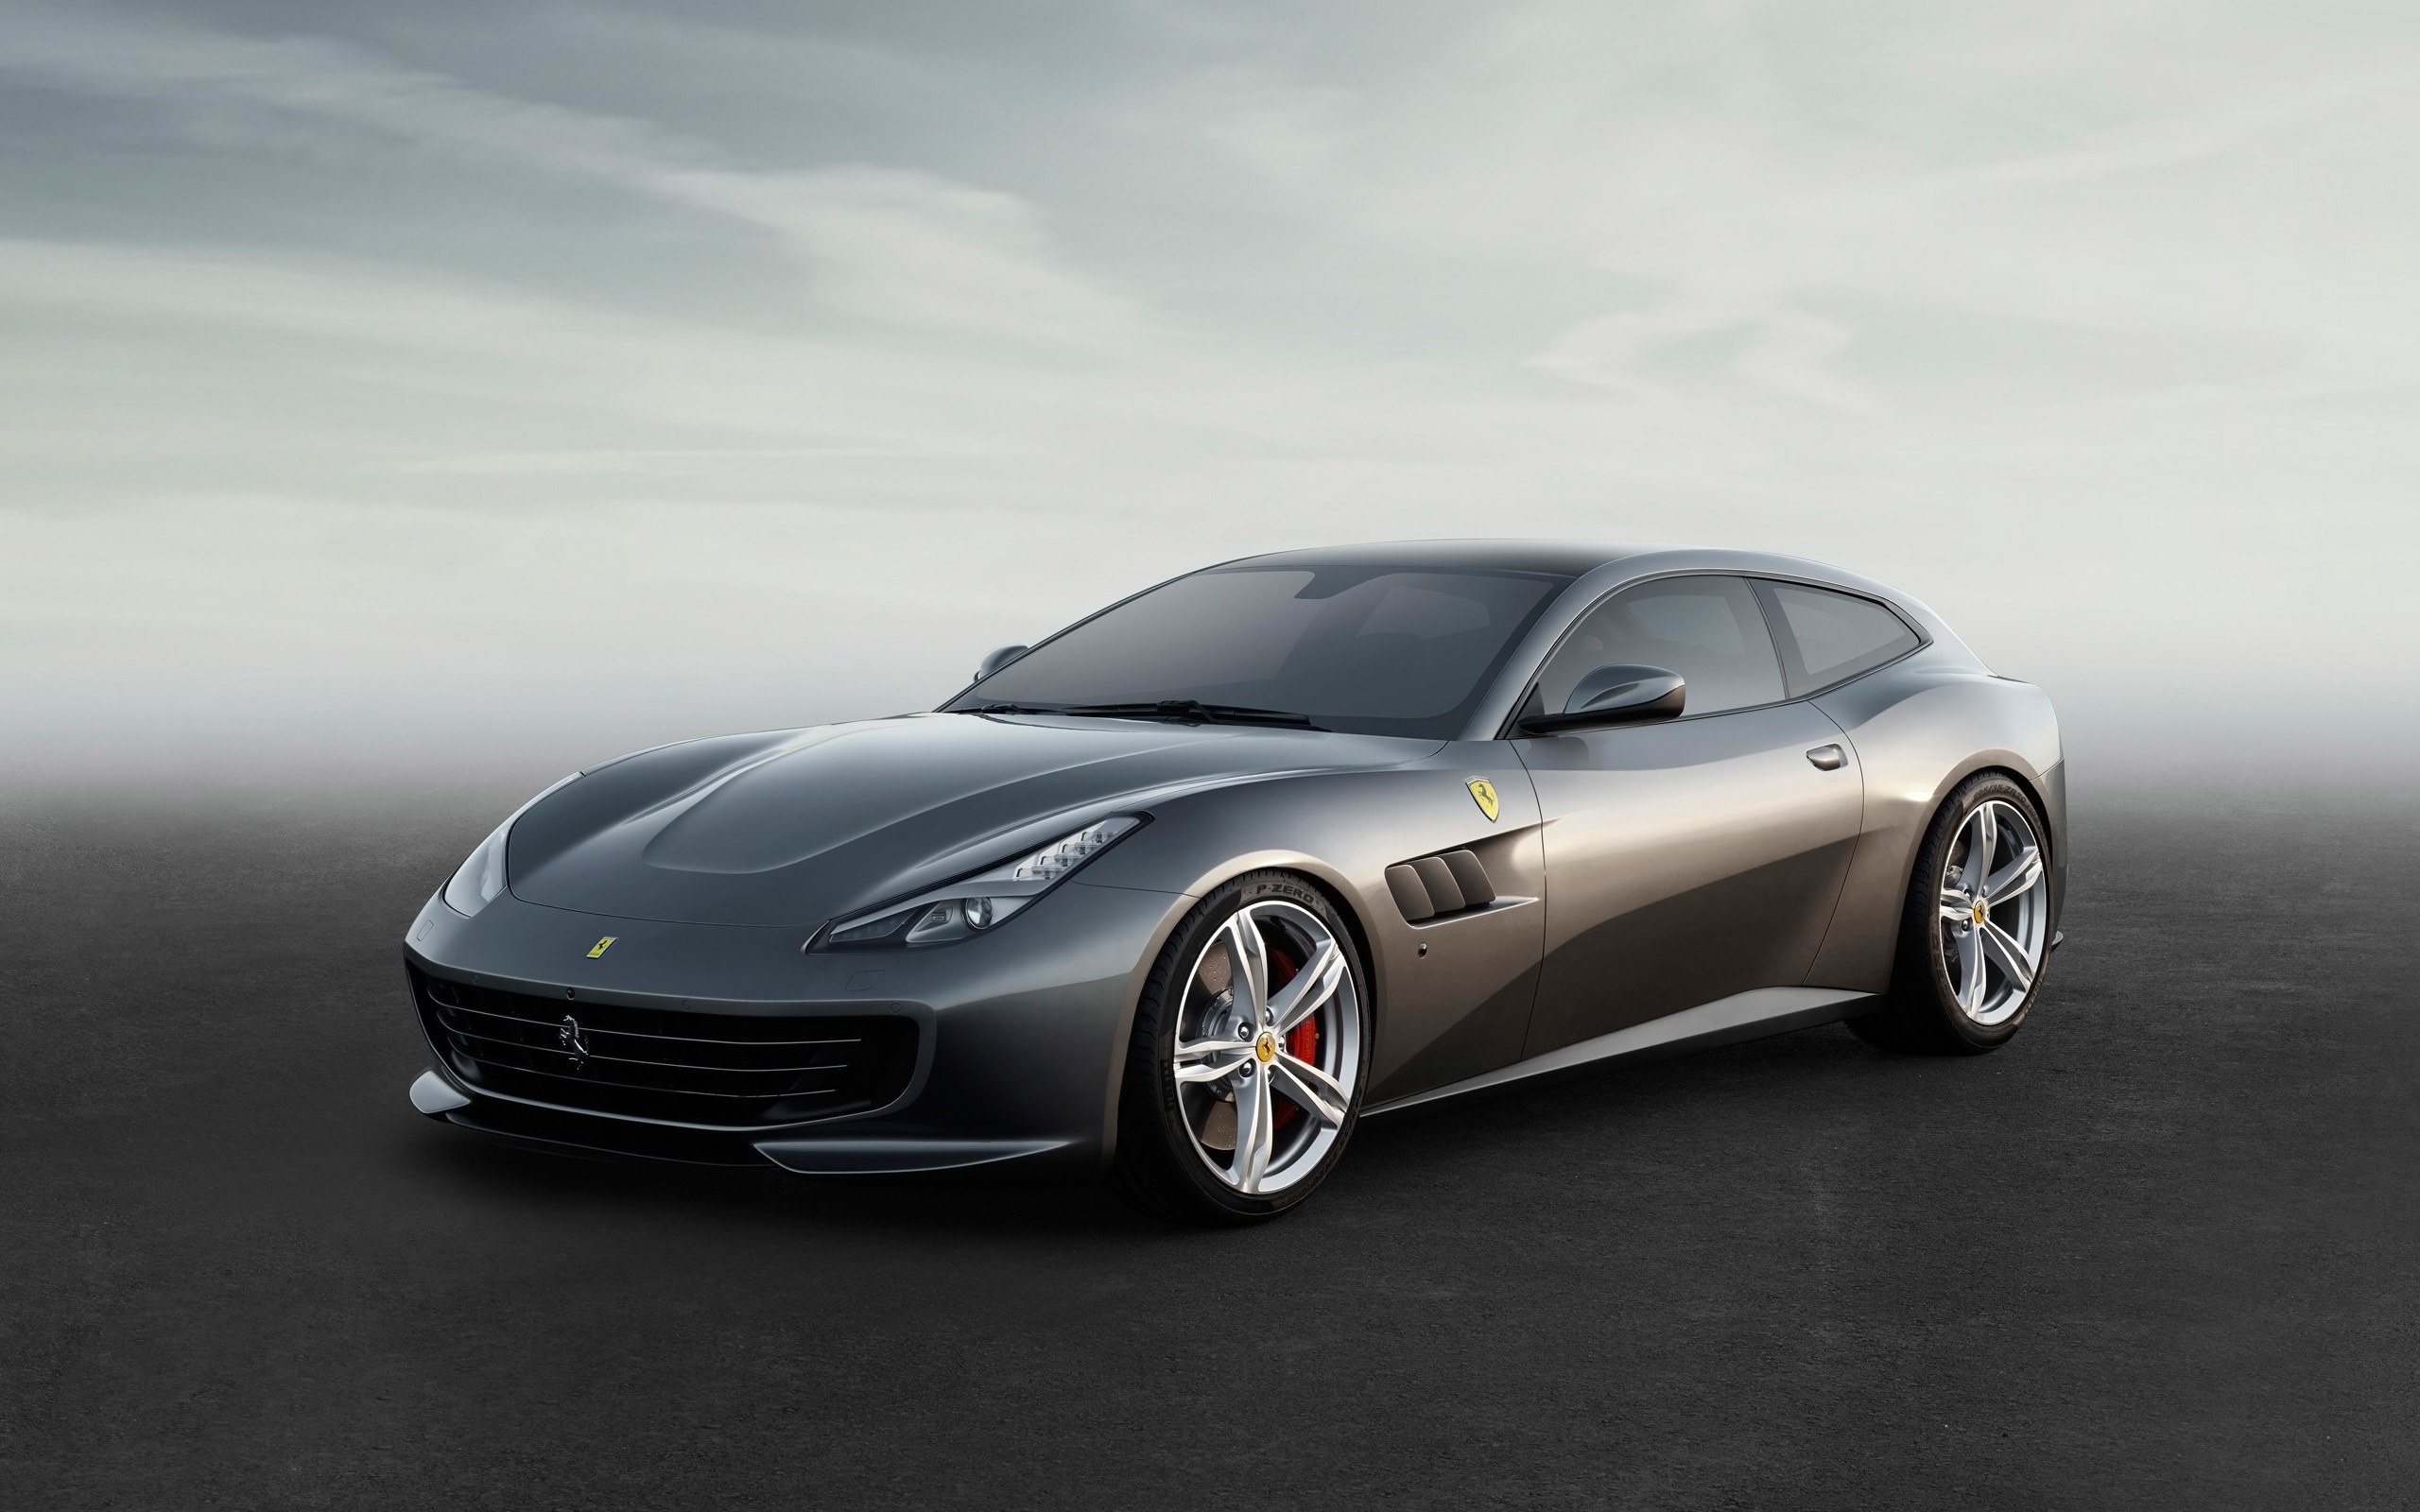 2560x1600 Ferrari F Hdtv p Hd wallpaper 2560×1600